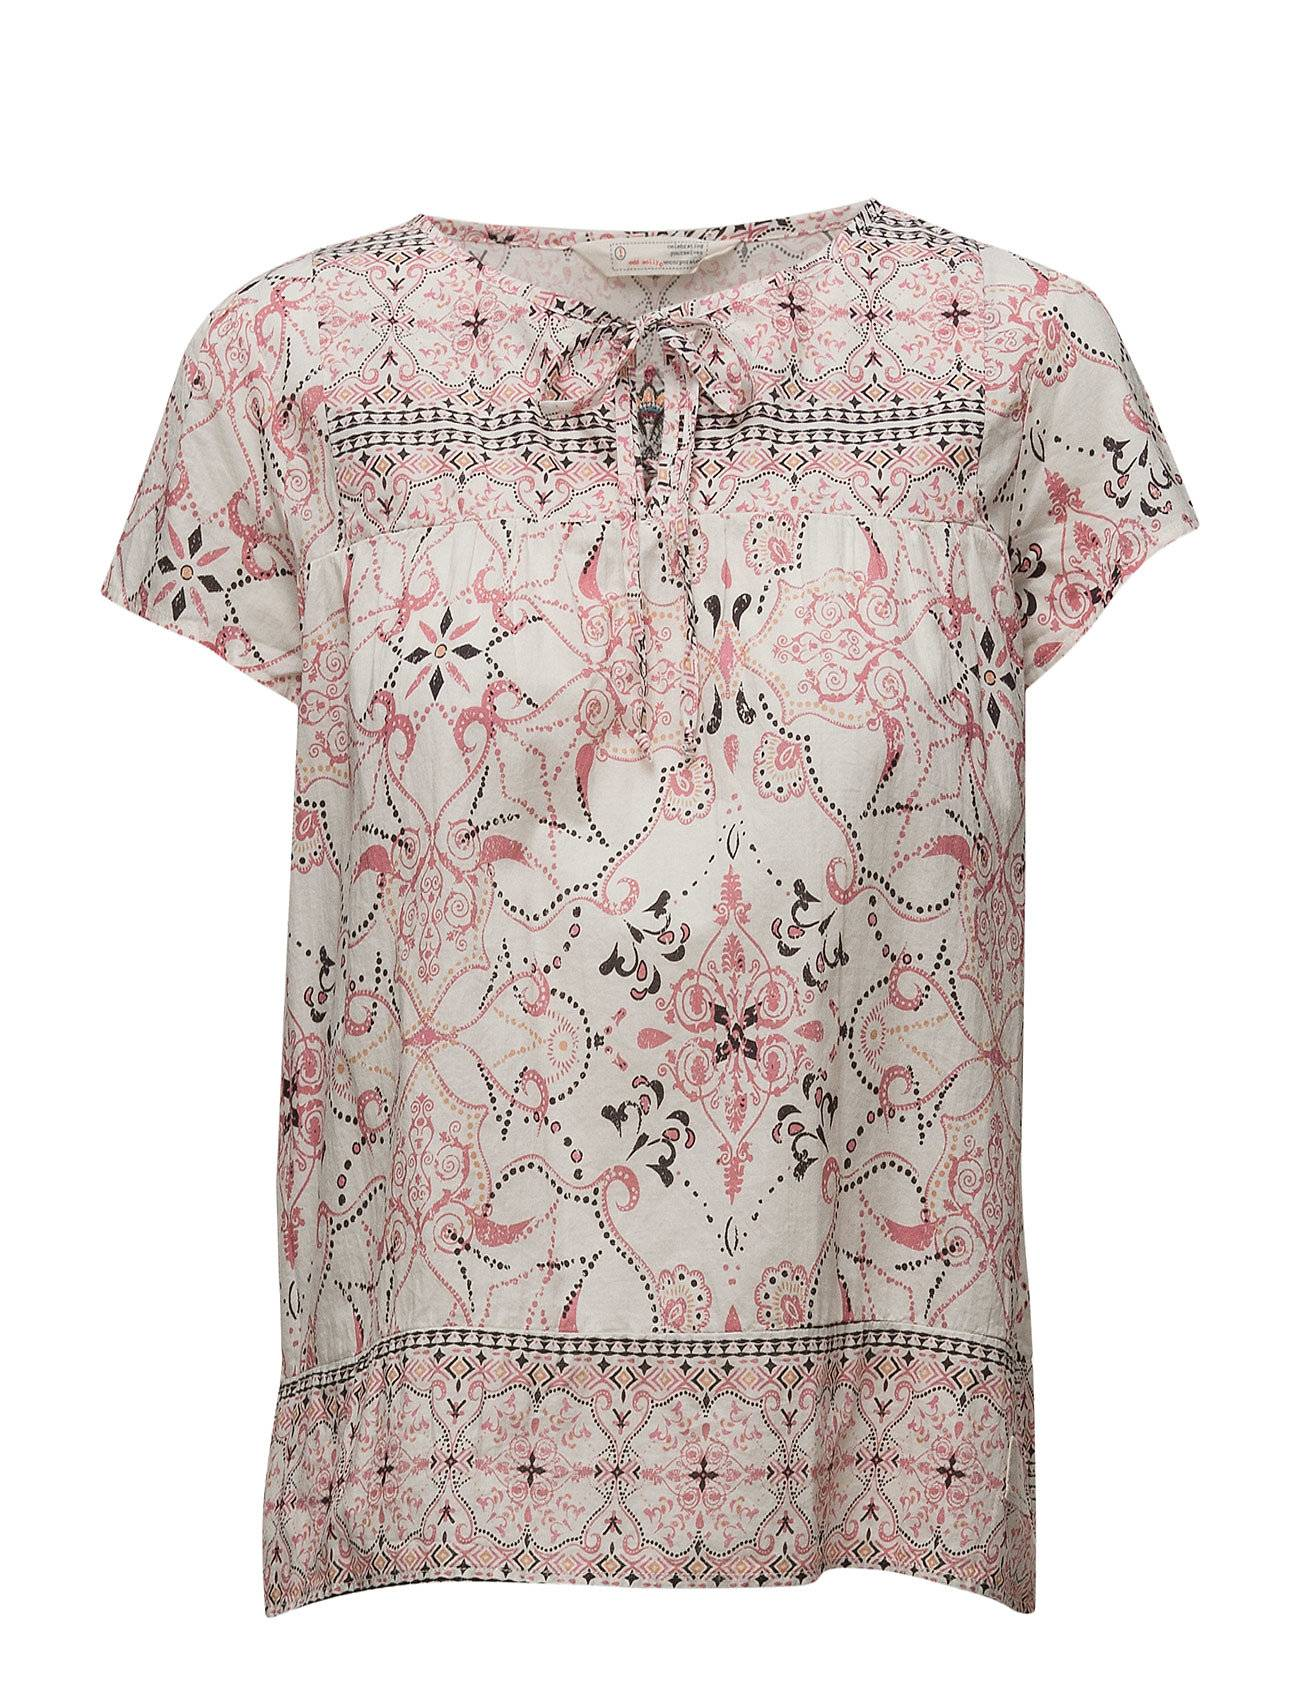 Image of ODD MOLLY Backb Blouse Blouses Short-sleeved Vaaleanpunainen ODD MOLLY